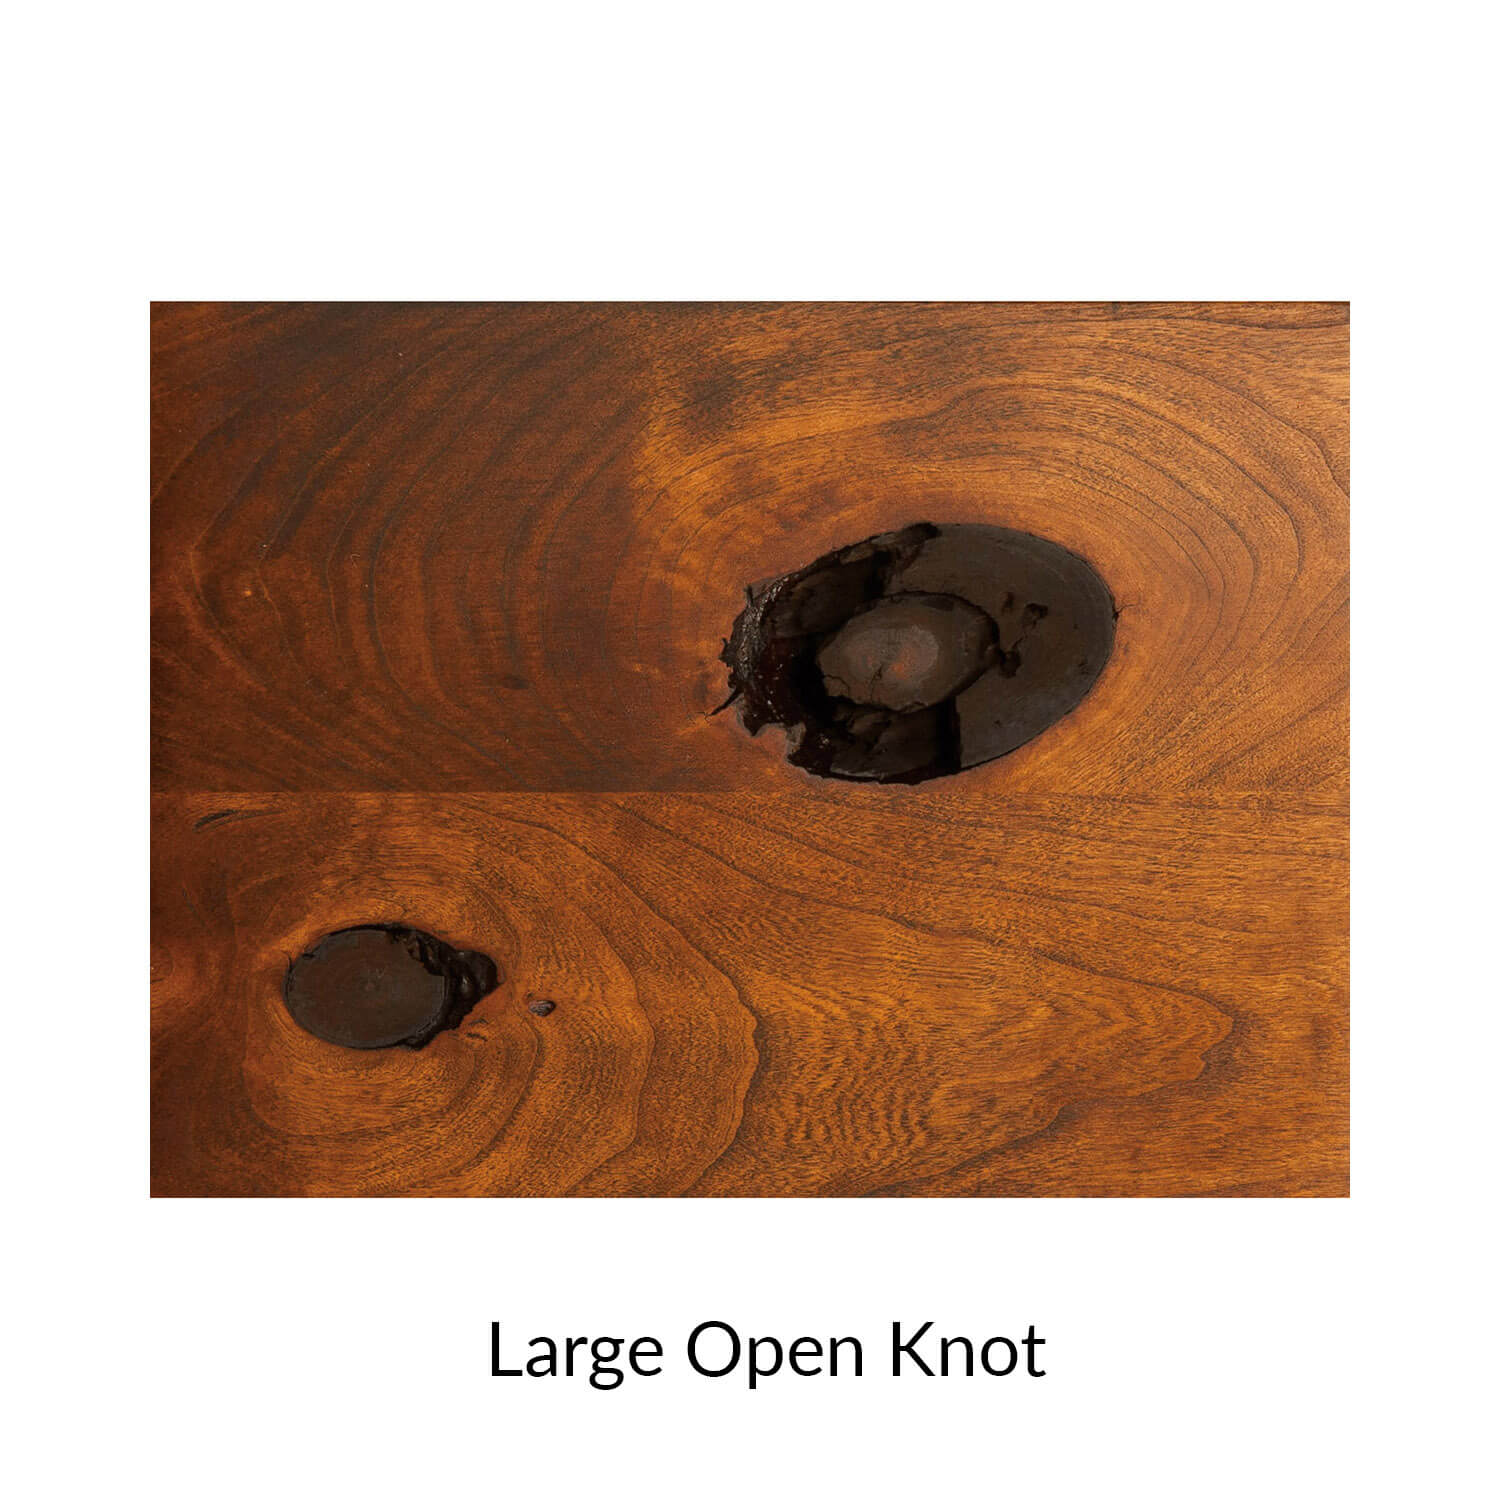 5.-large-open-knot.jpg